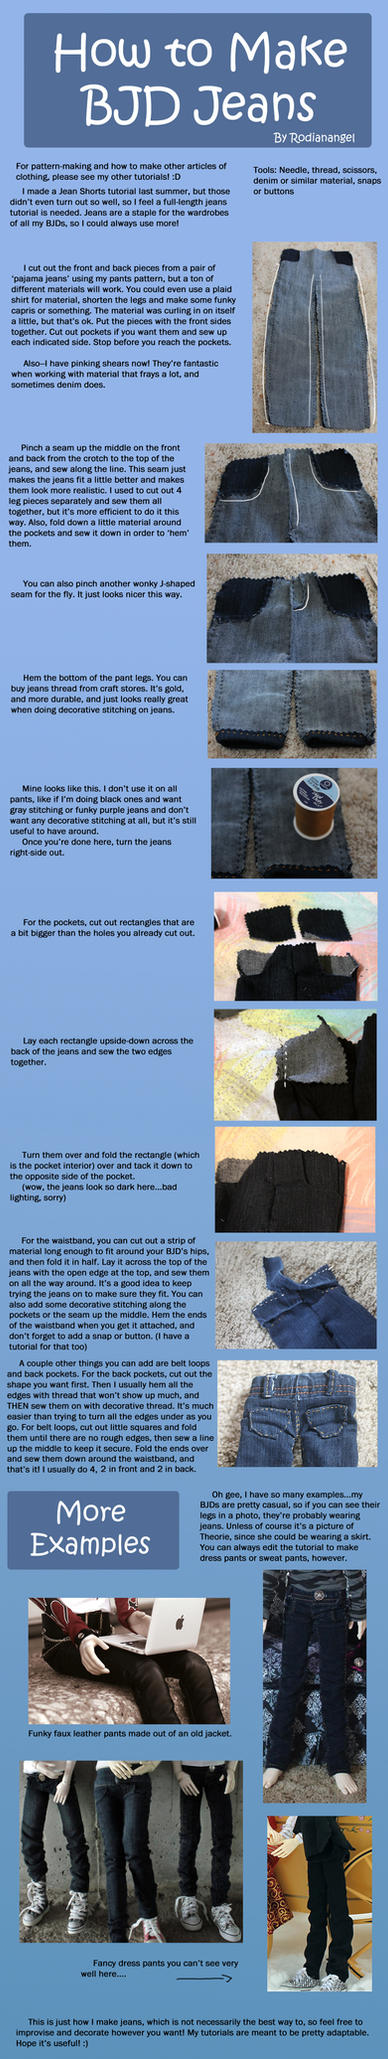 How to Make BJD Jeans by RodianAngel